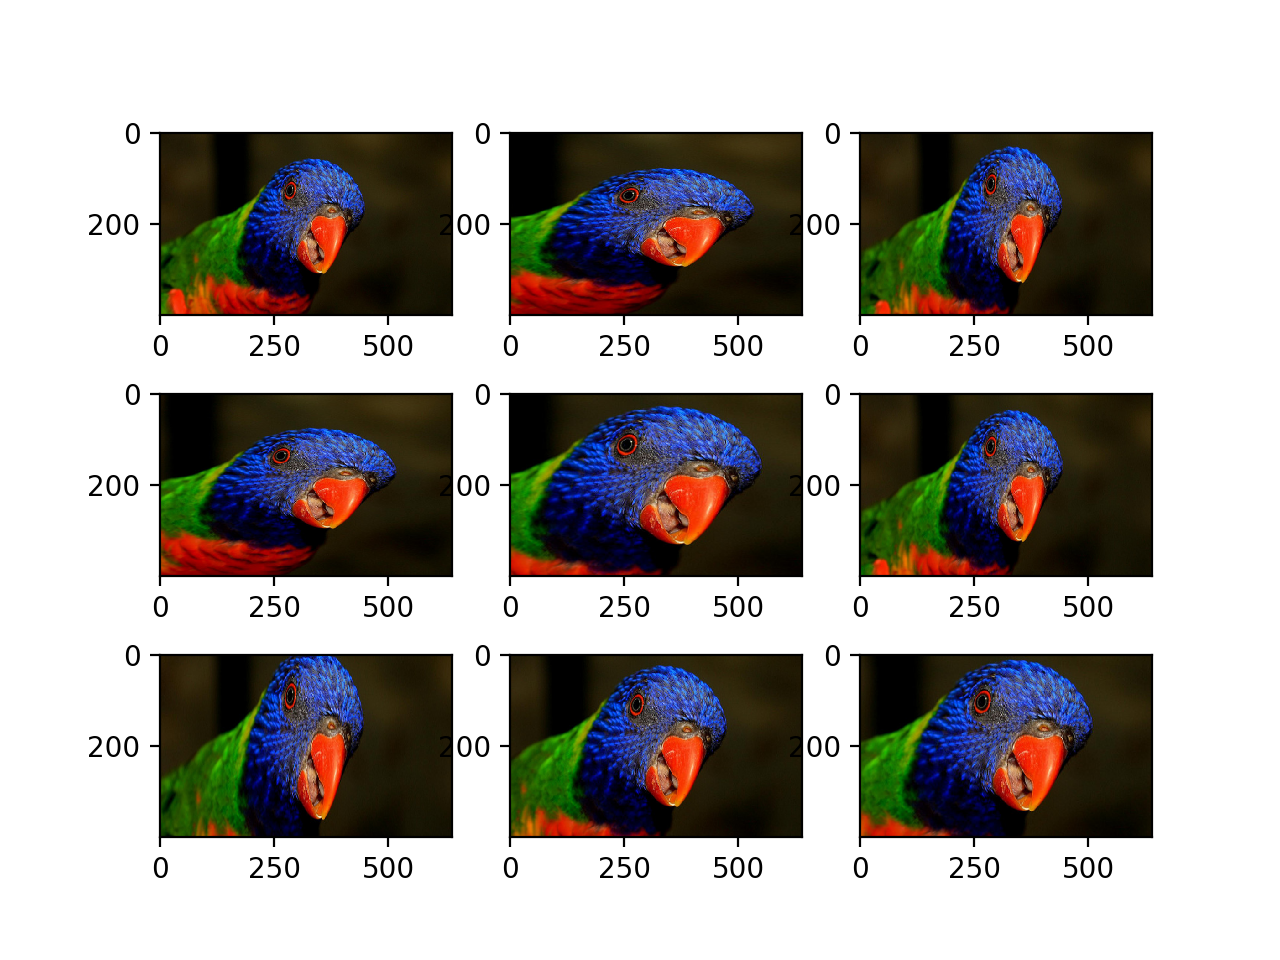 Plot of Images Generated With a Random Zoom Augmentation